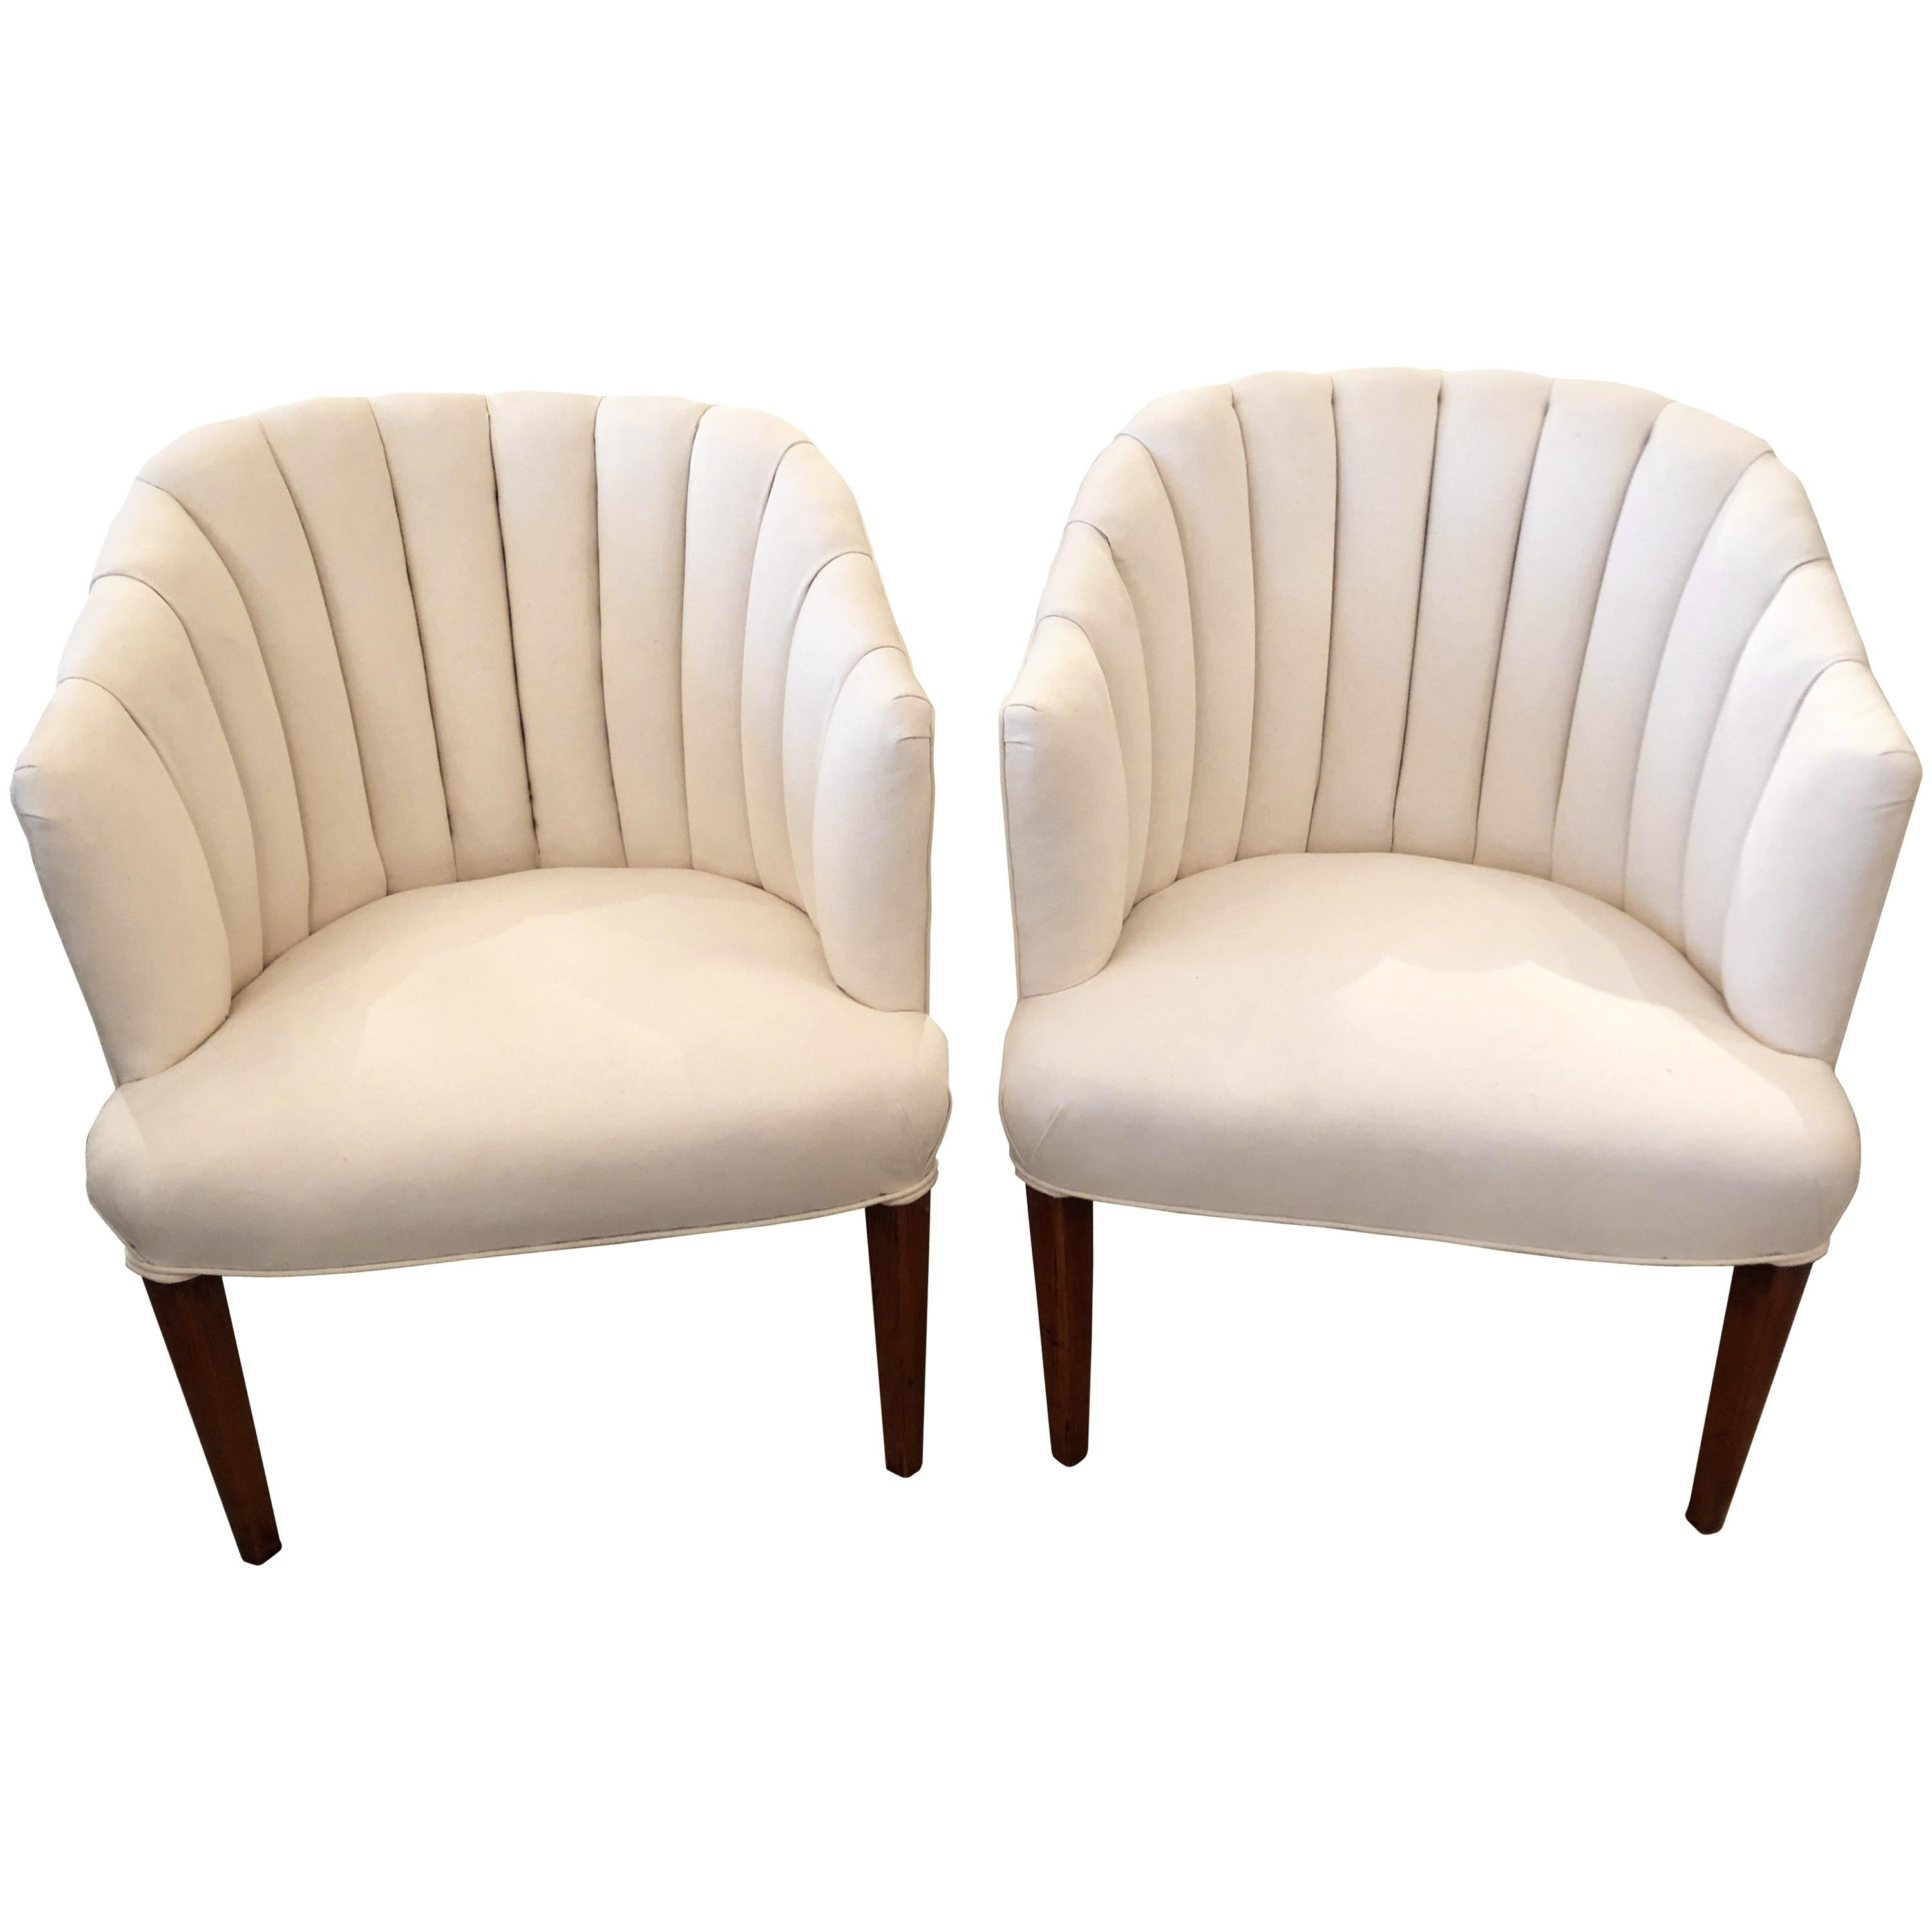 Pair of Classy Newly Upholstered Channel Back Club Chairs